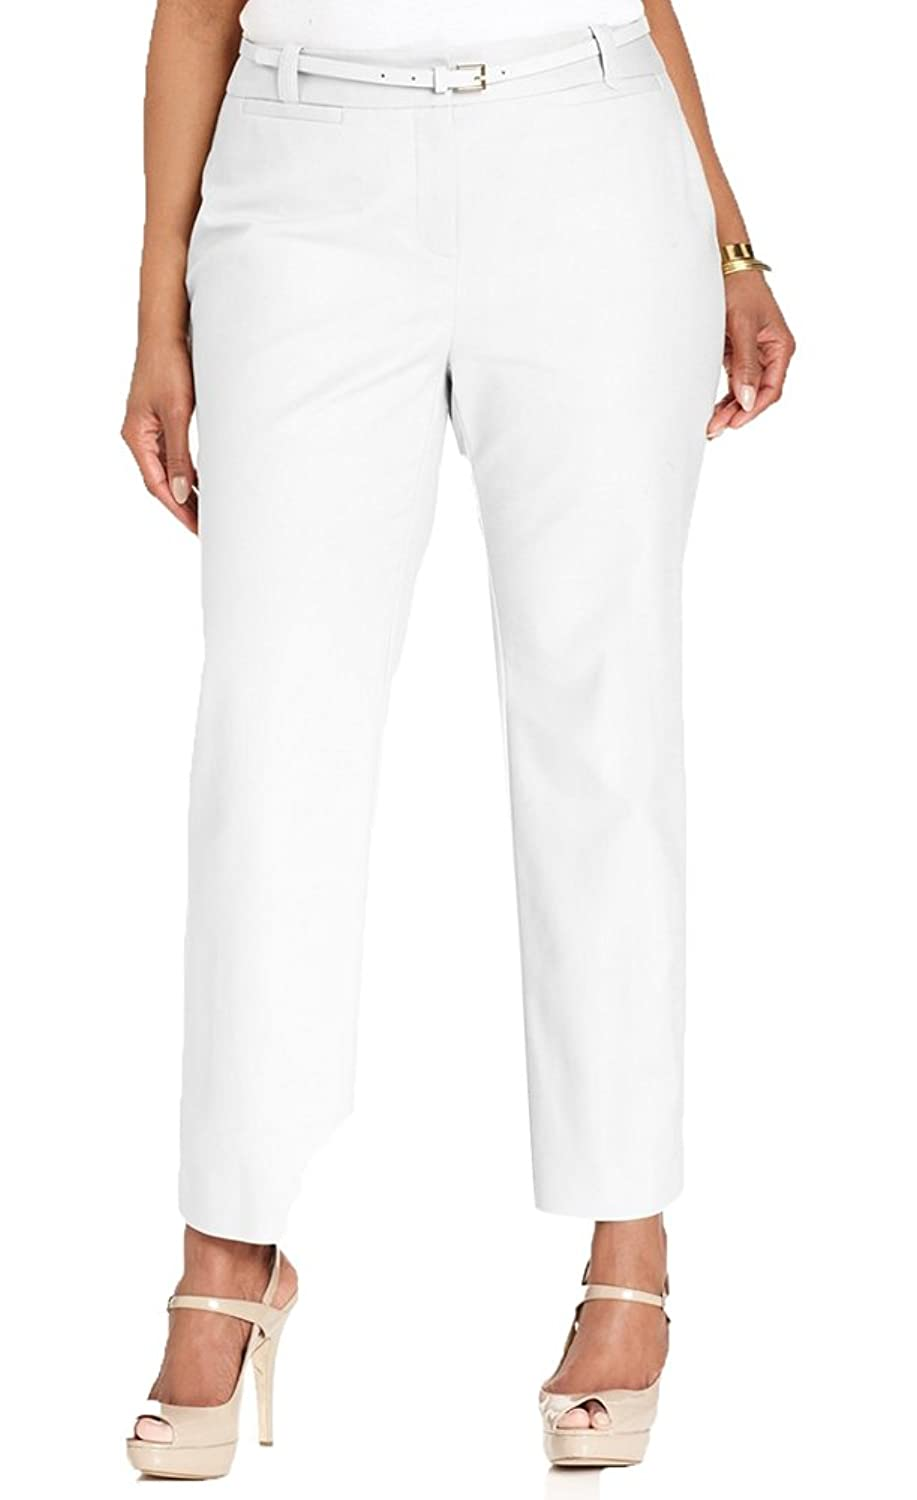 Charter Club White Belted Plus Size Pants